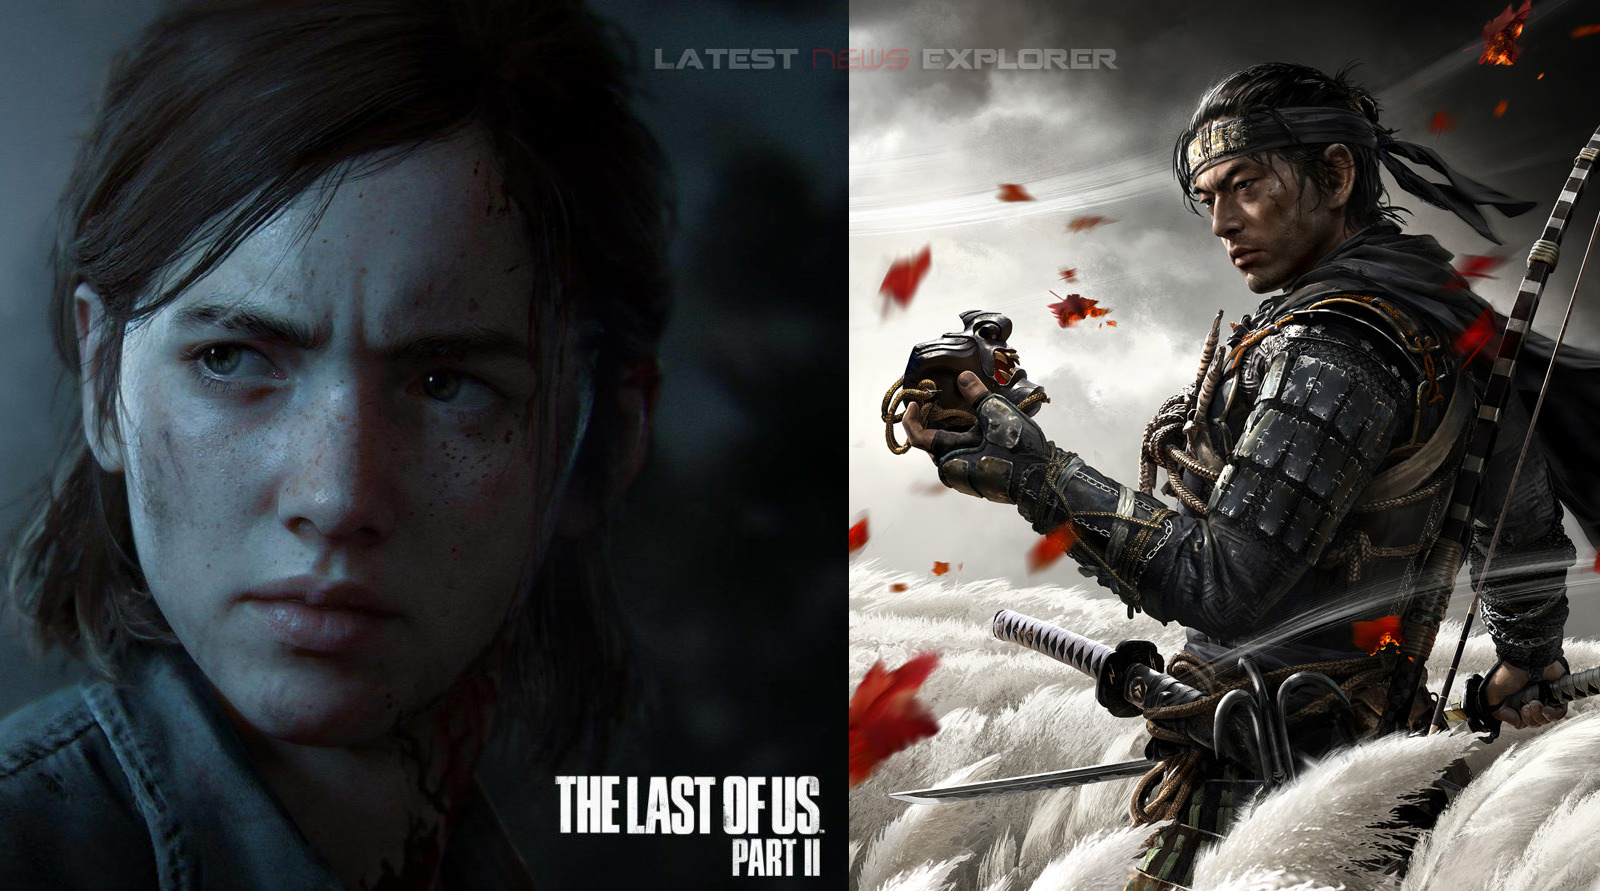 The Last of Us Part II & Ghost of Tsushima Gets New Release Dates